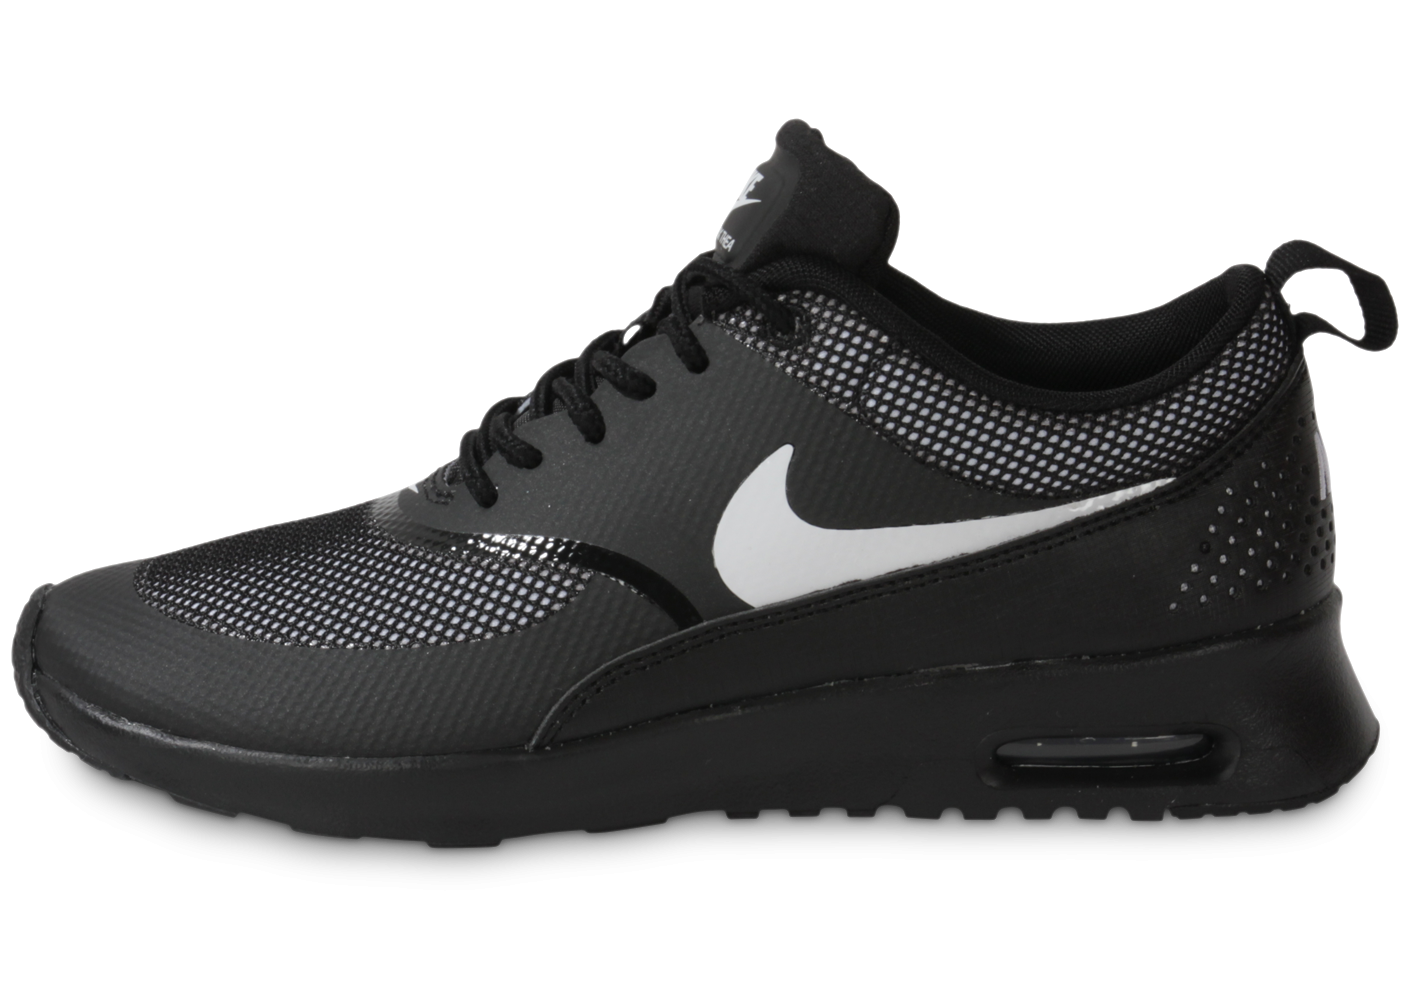 569e48f74e4b Nike Air Max Thea , baskets Air Max - Chausport | Shoes | Nike air ...